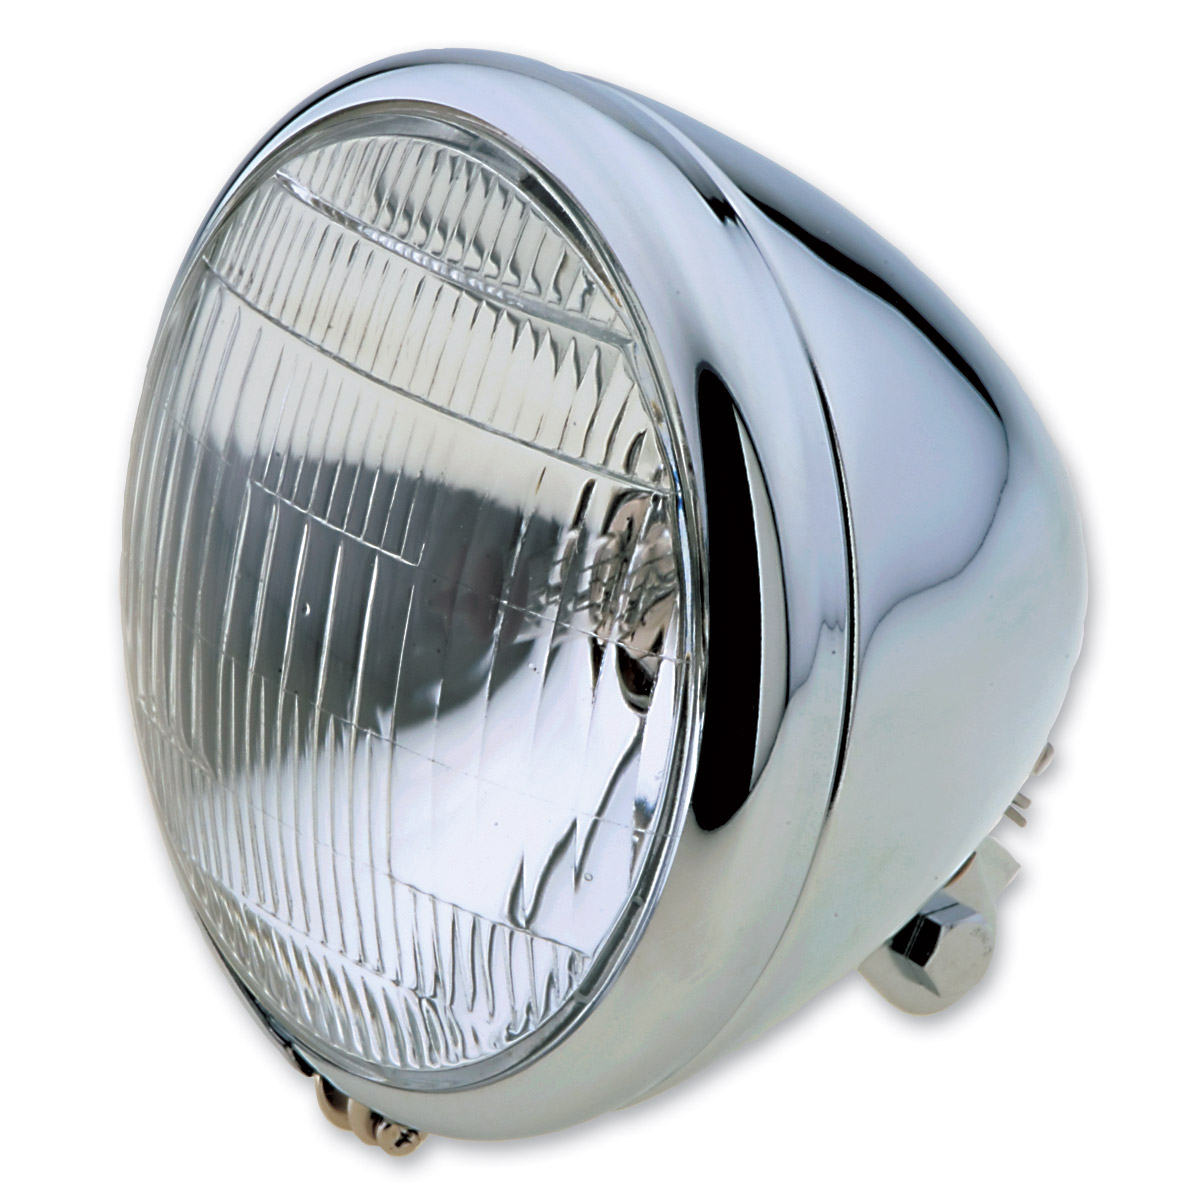 J&P Cycles® Teardrop Headlight Assembly